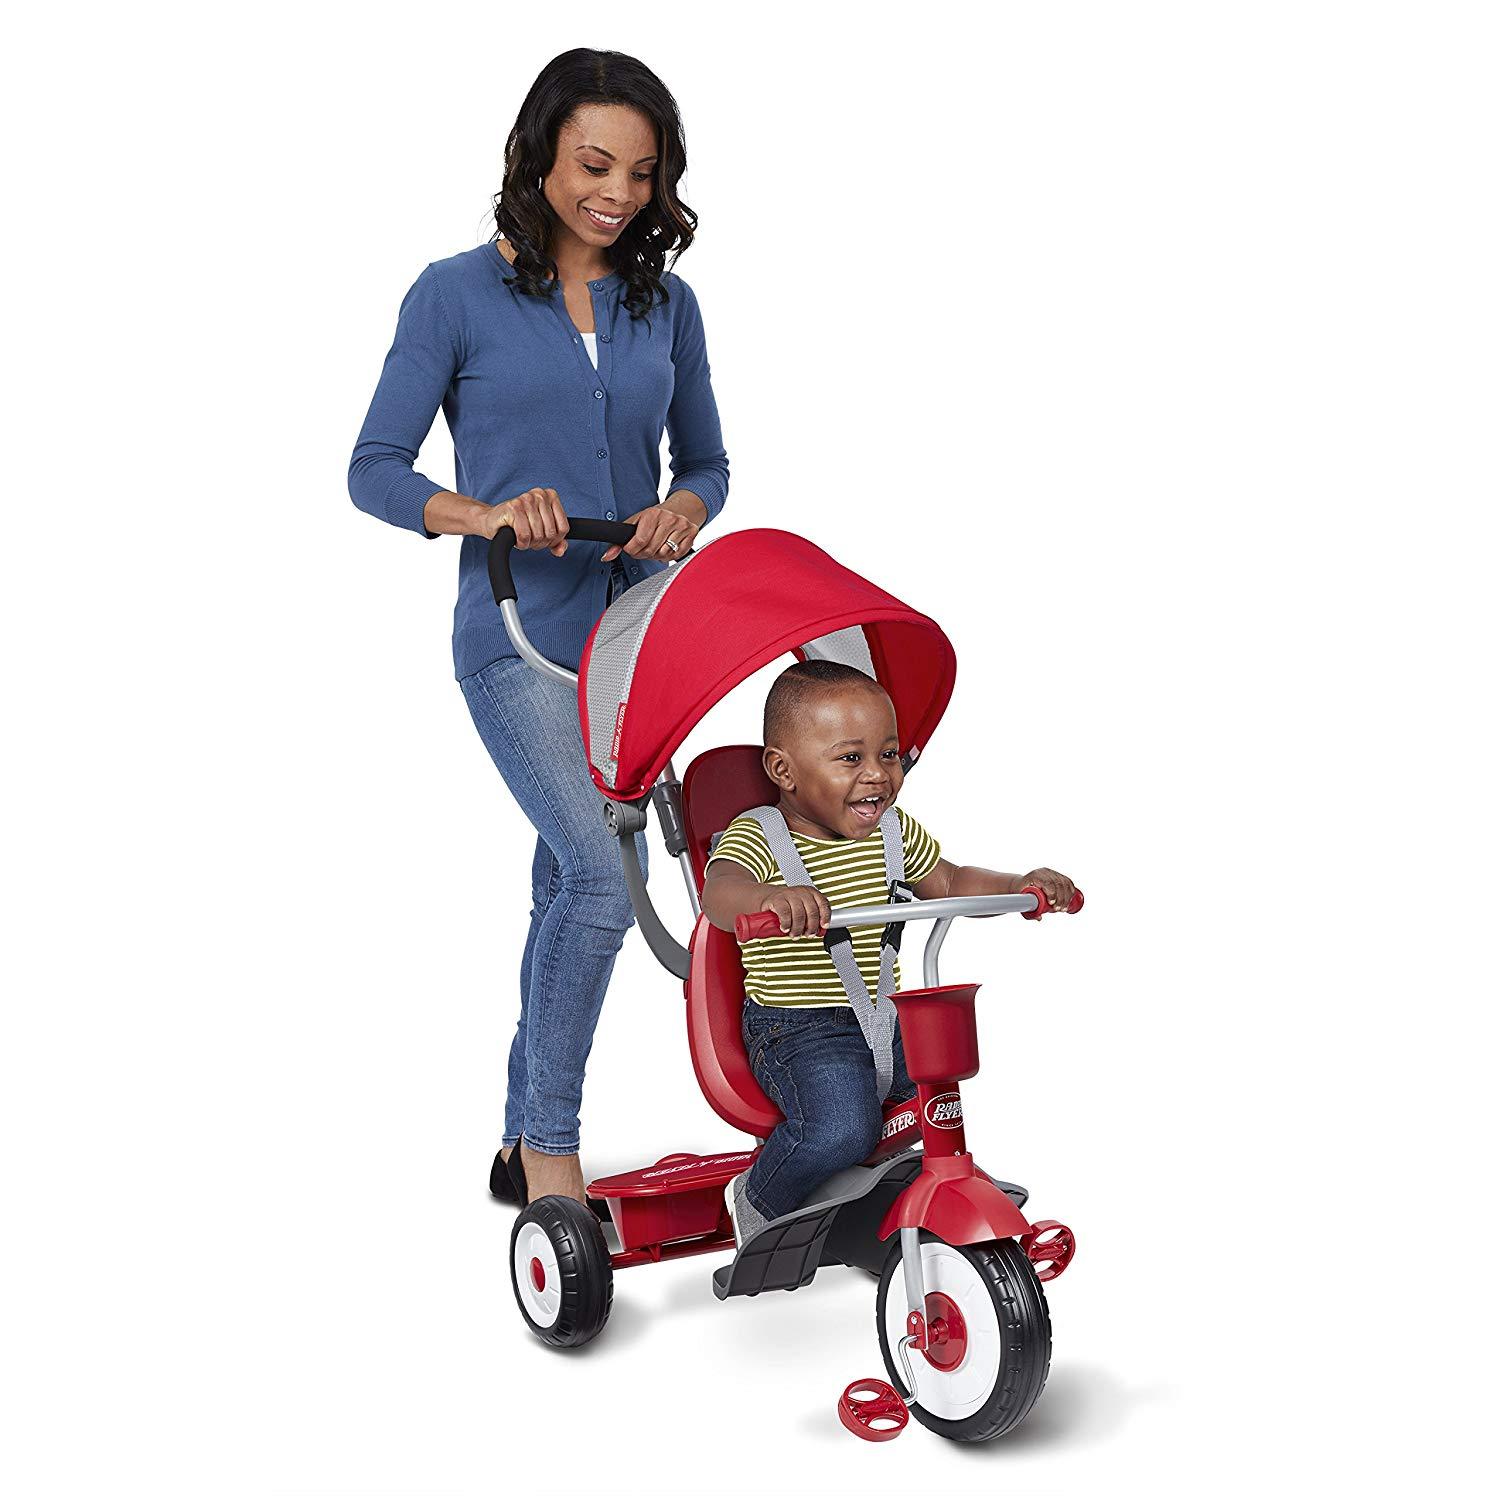 The Radio Flyer 4 In 1 Stroll N Trike is easily maneuverable for both the parent & the child